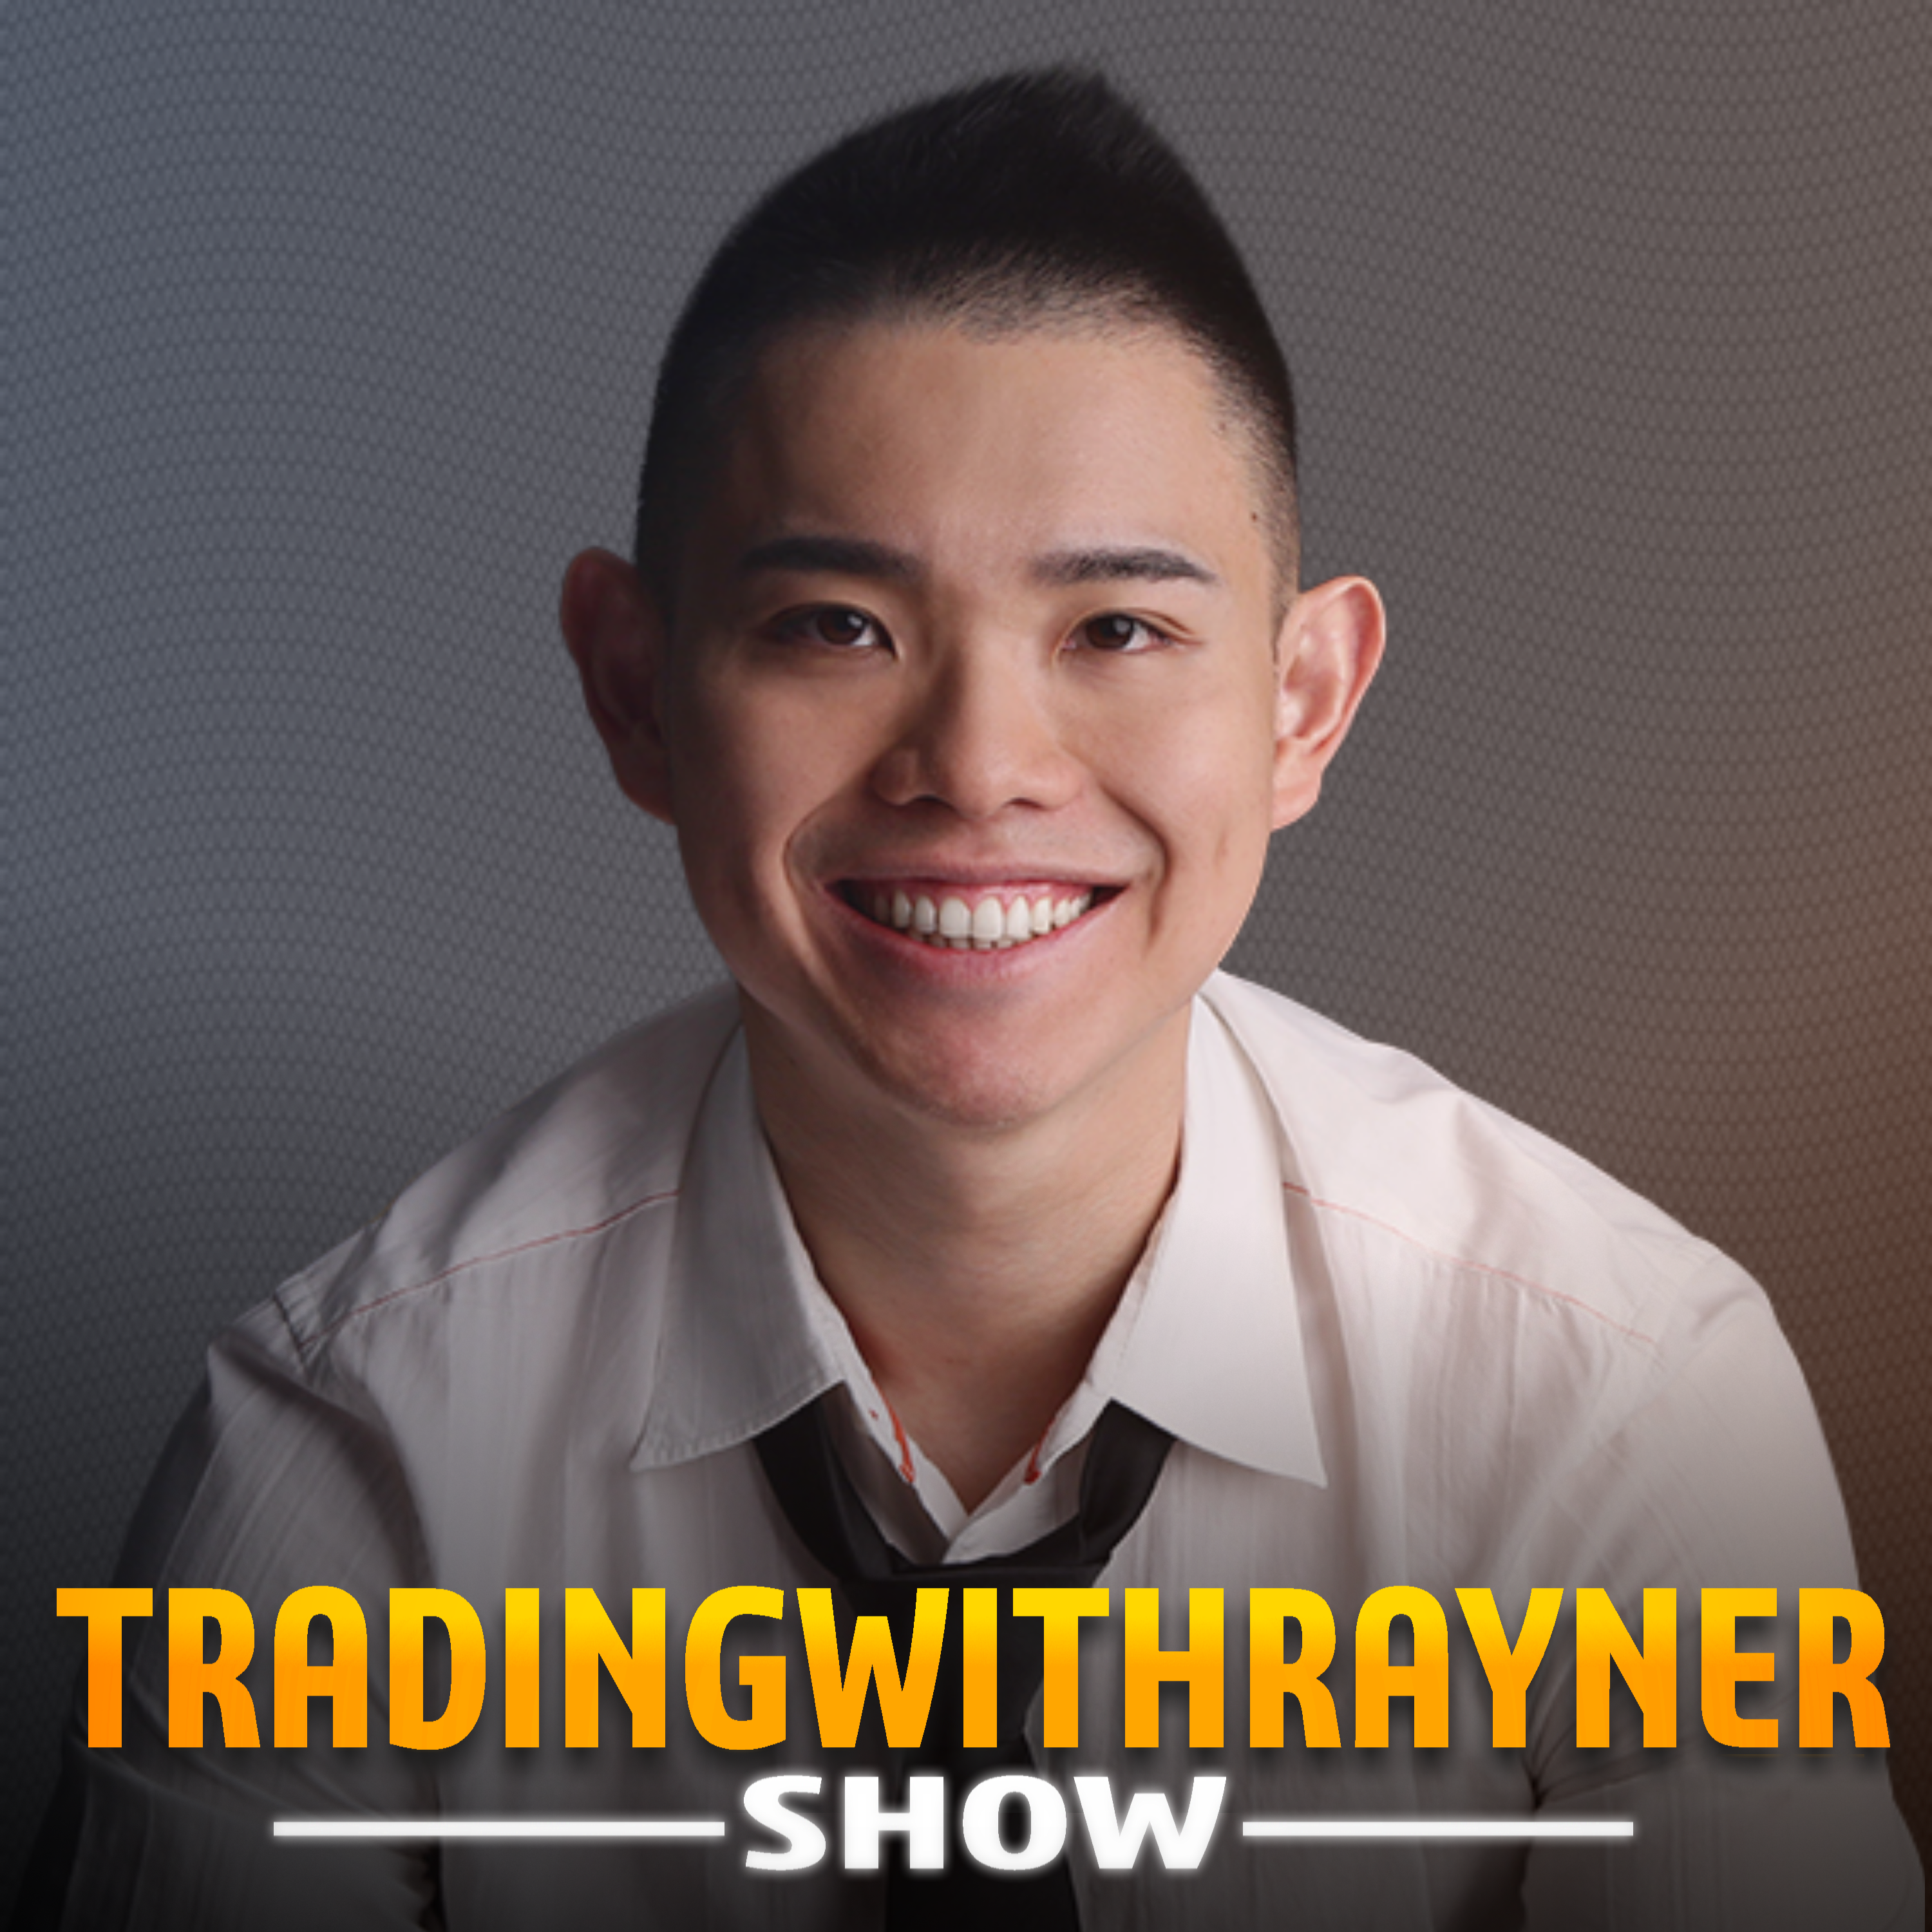 TradingWithRayner Show show art